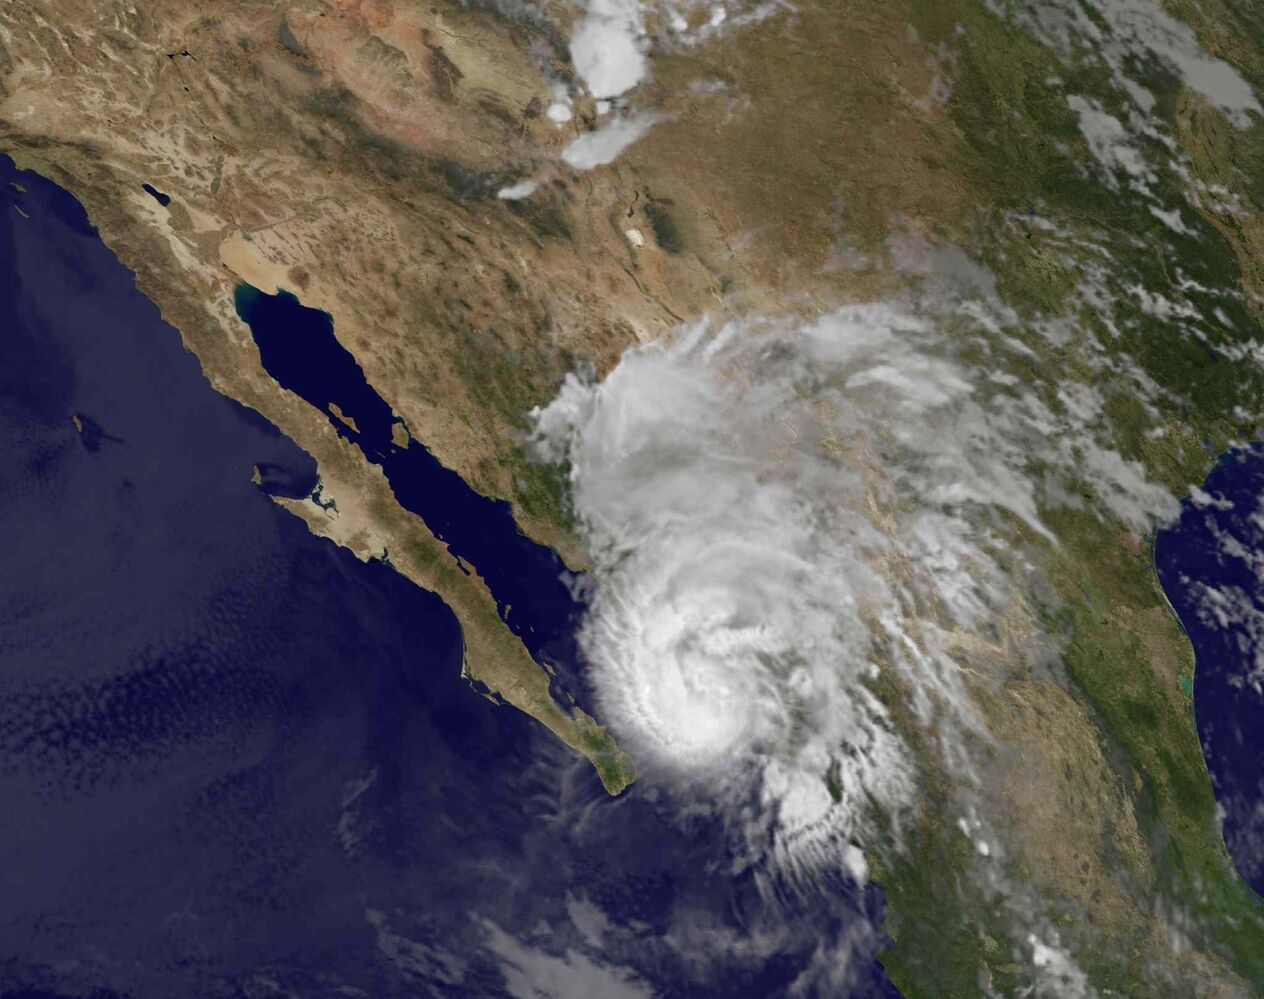 This image provided by NOAA shows Hurricane Manuel taken at 3:45 a.m. EDT Thursday Sept. 19, 2013. The U.S. National Hurricane Center said Manuel was a Category 1 hurricane hugging Mexico's coast early Thursday and expected to produce 75 mph winds and between 5 and 10 inches of rain over the state of Sinaloa. (NOAA / The Associated Press)